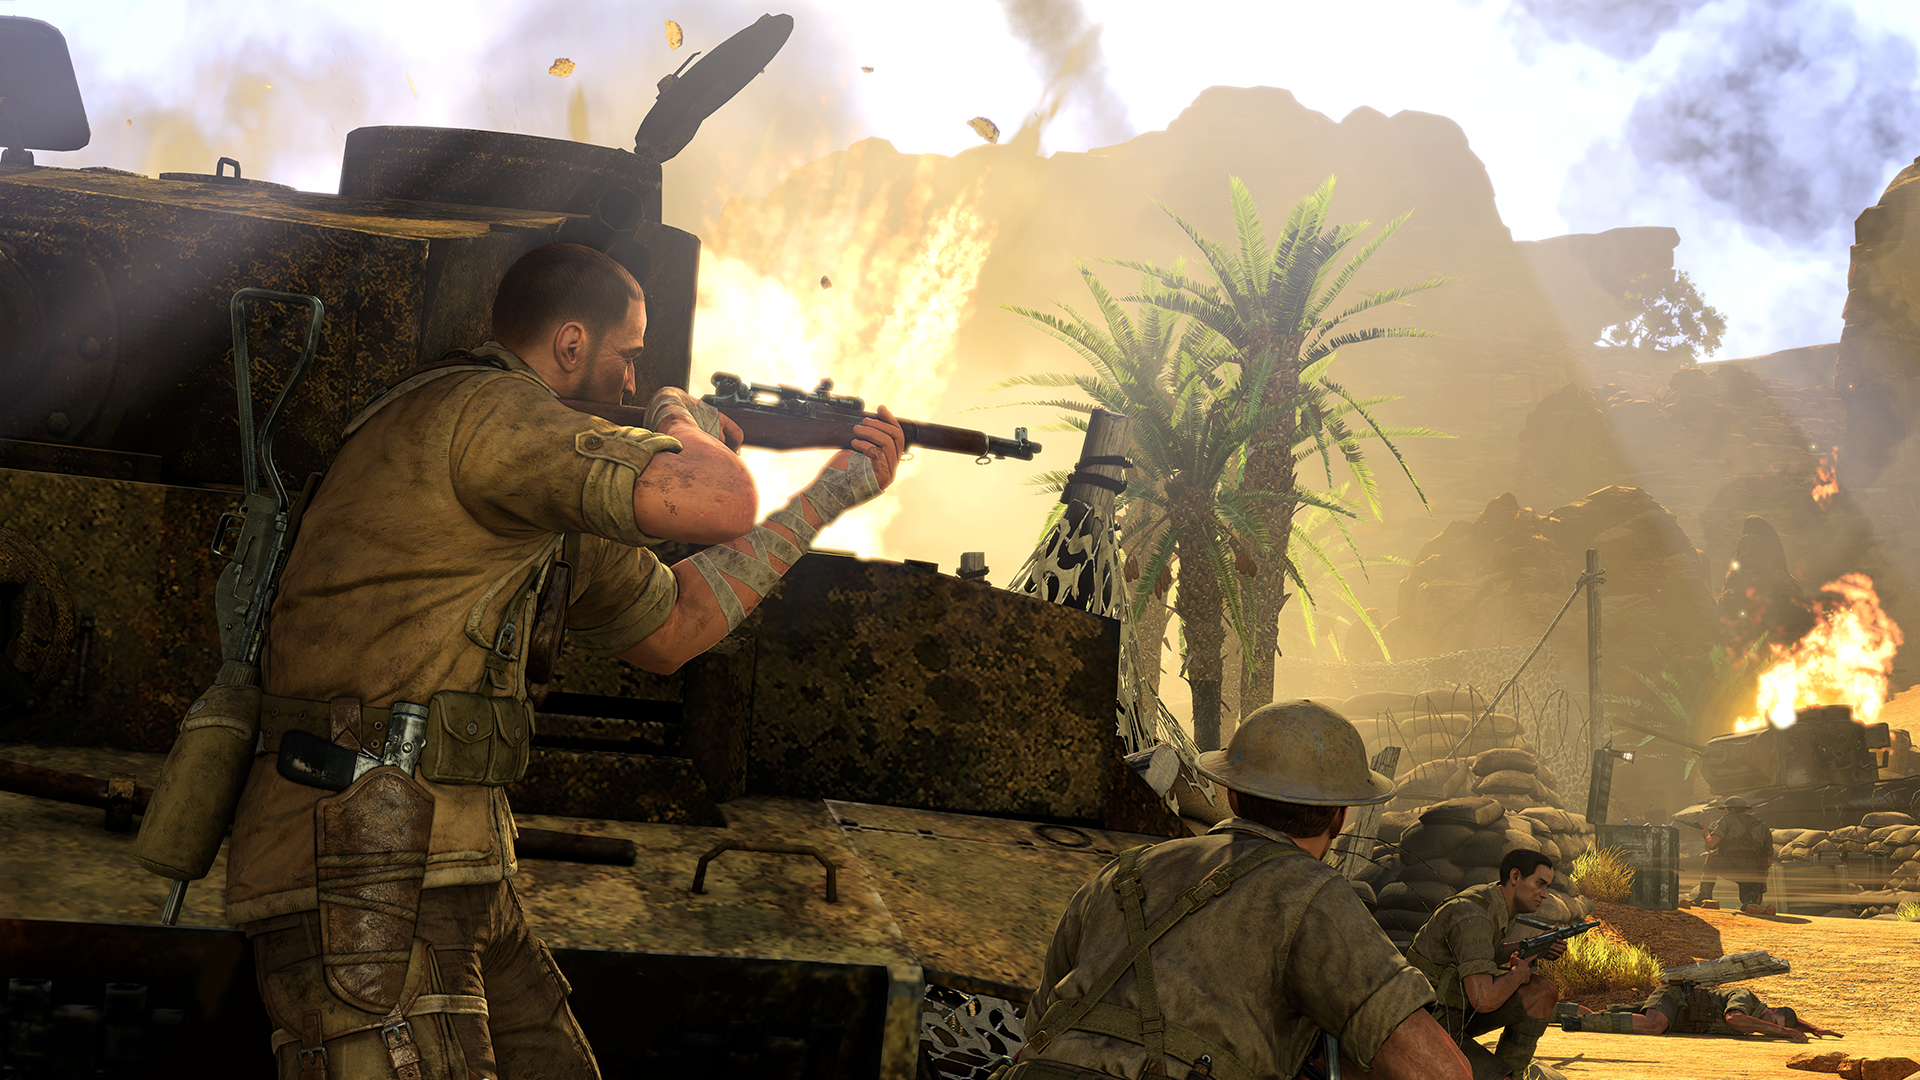 [E3 2014] - Sniper Elite 3 Hands on Co-Op Demo